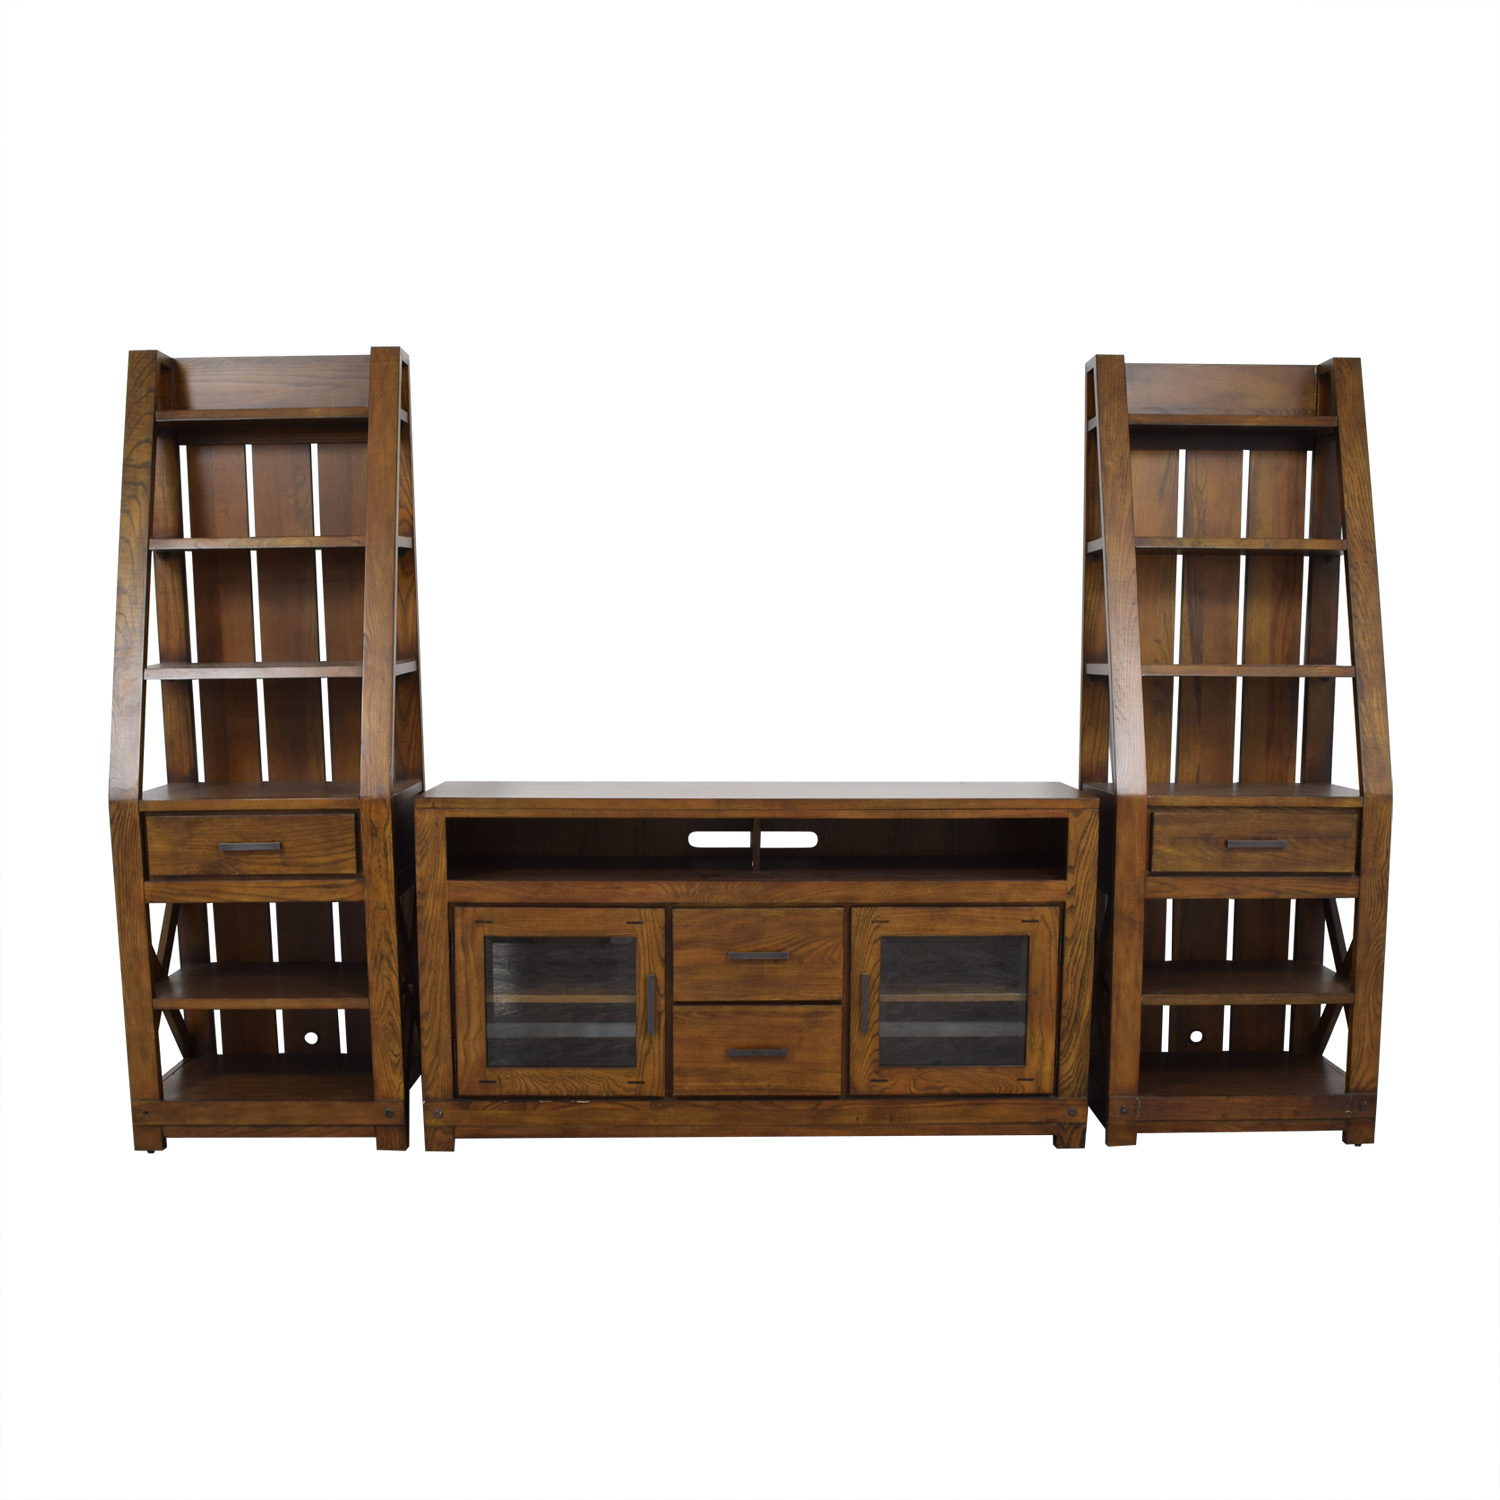 Admirable 85 Off Raymour Flanigan Raymour Flanigan Wood Wall Unit With Shelves Storage Download Free Architecture Designs Intelgarnamadebymaigaardcom